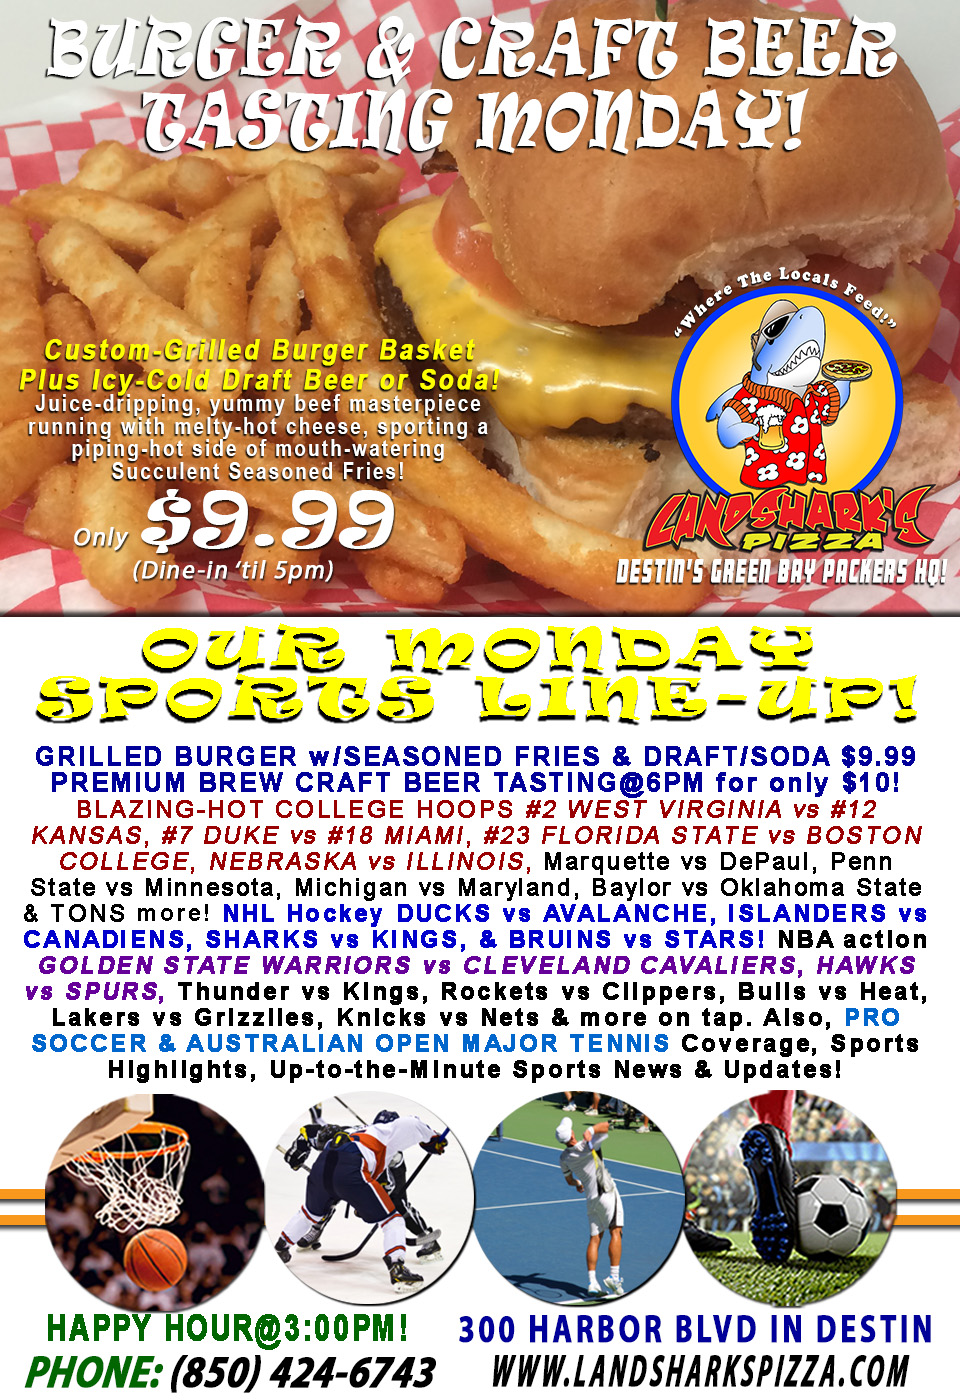 Steamy-Hot Grilled Burger & Brew Monday College Hoops #2 WEST VIRGINIA vs #12 KANSAS|BEER TASTING@6PM!